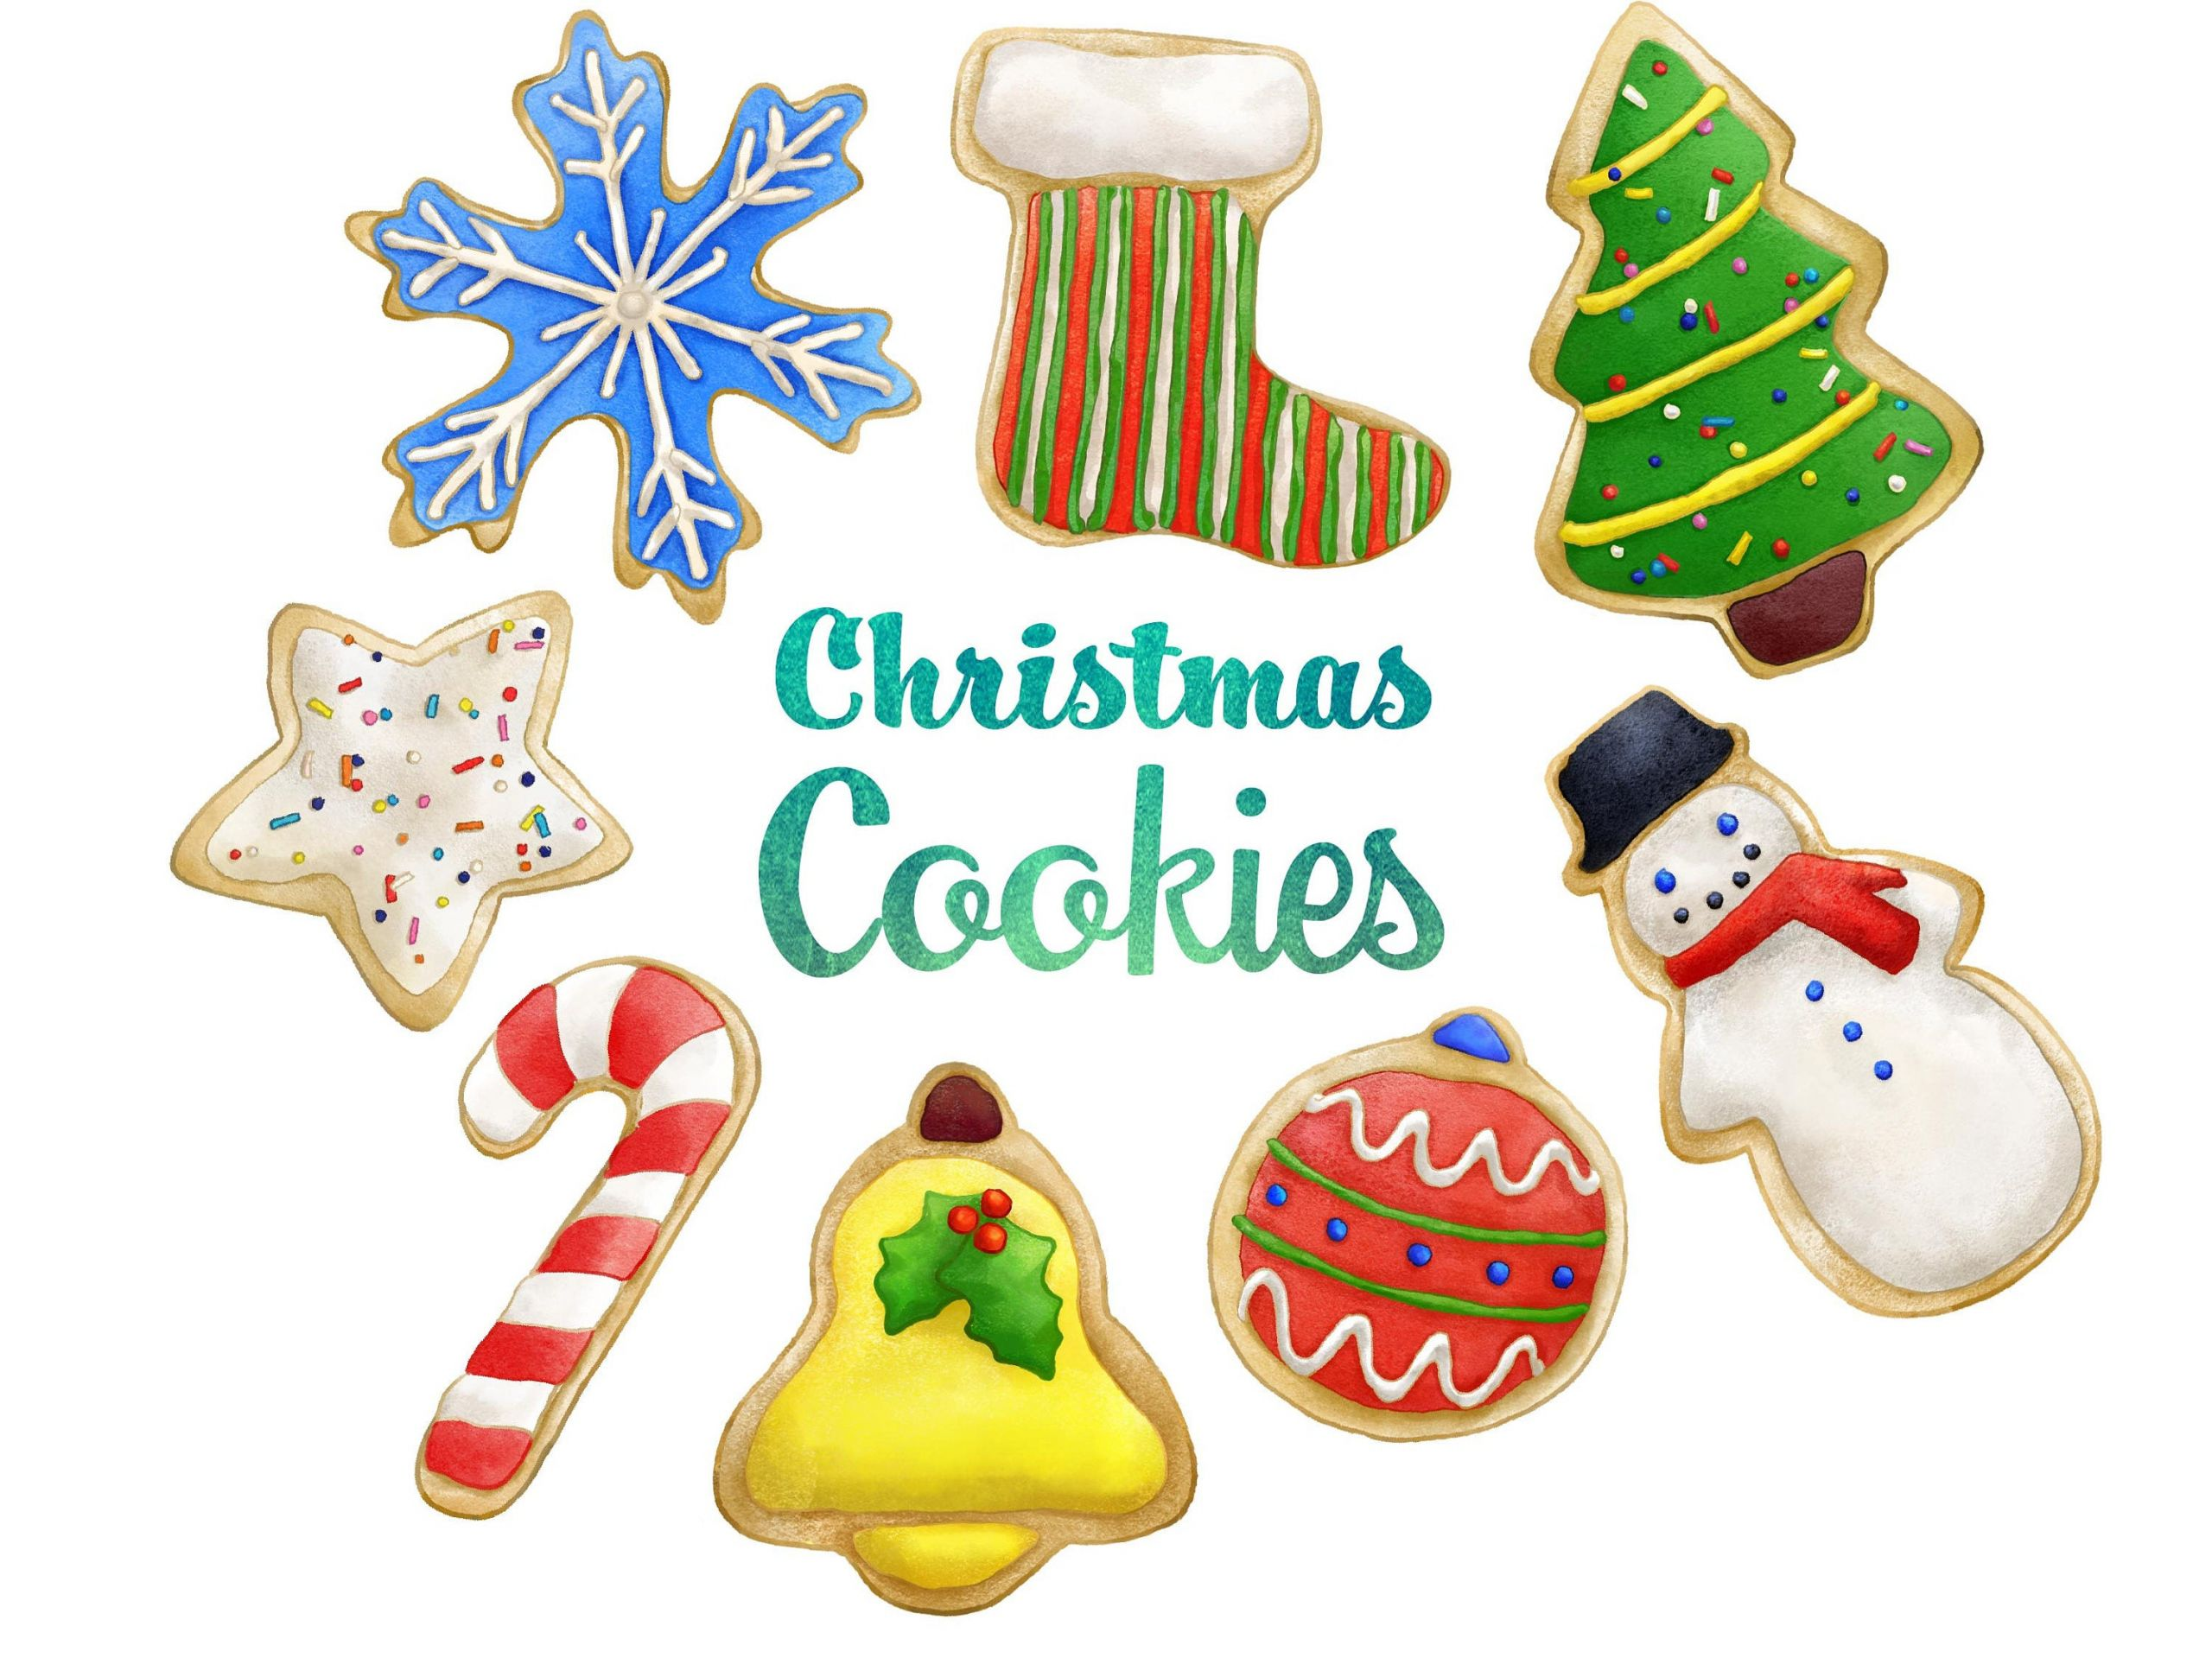 Christmas Cookies Clipart  Christmas Cookies Clipart Instant Digital Download Sugar